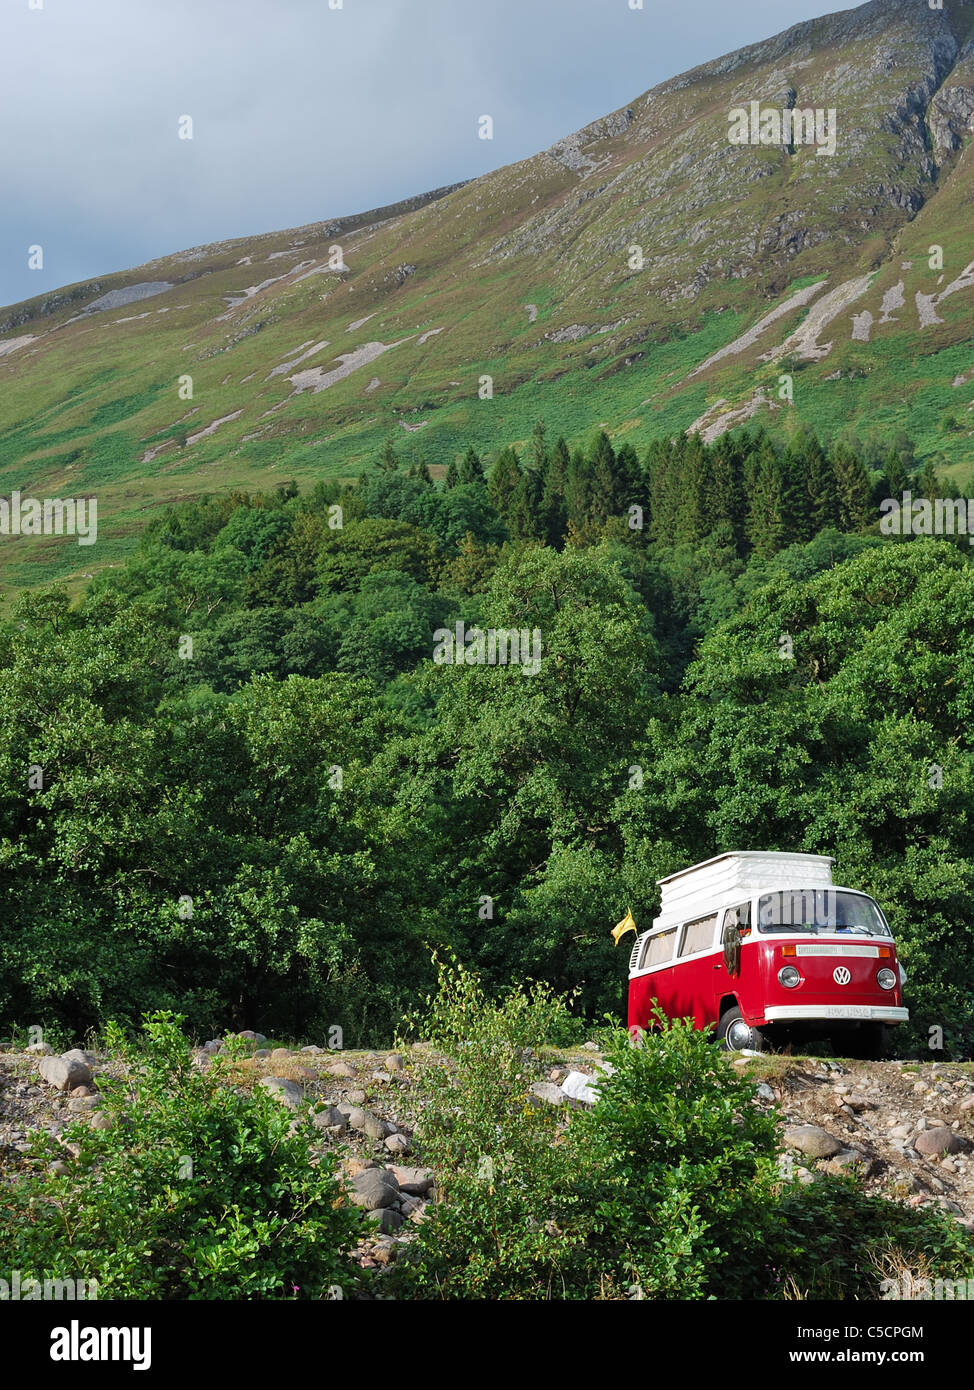 Touring the Highlands of Scotland in a VW campervan. - Stock Image